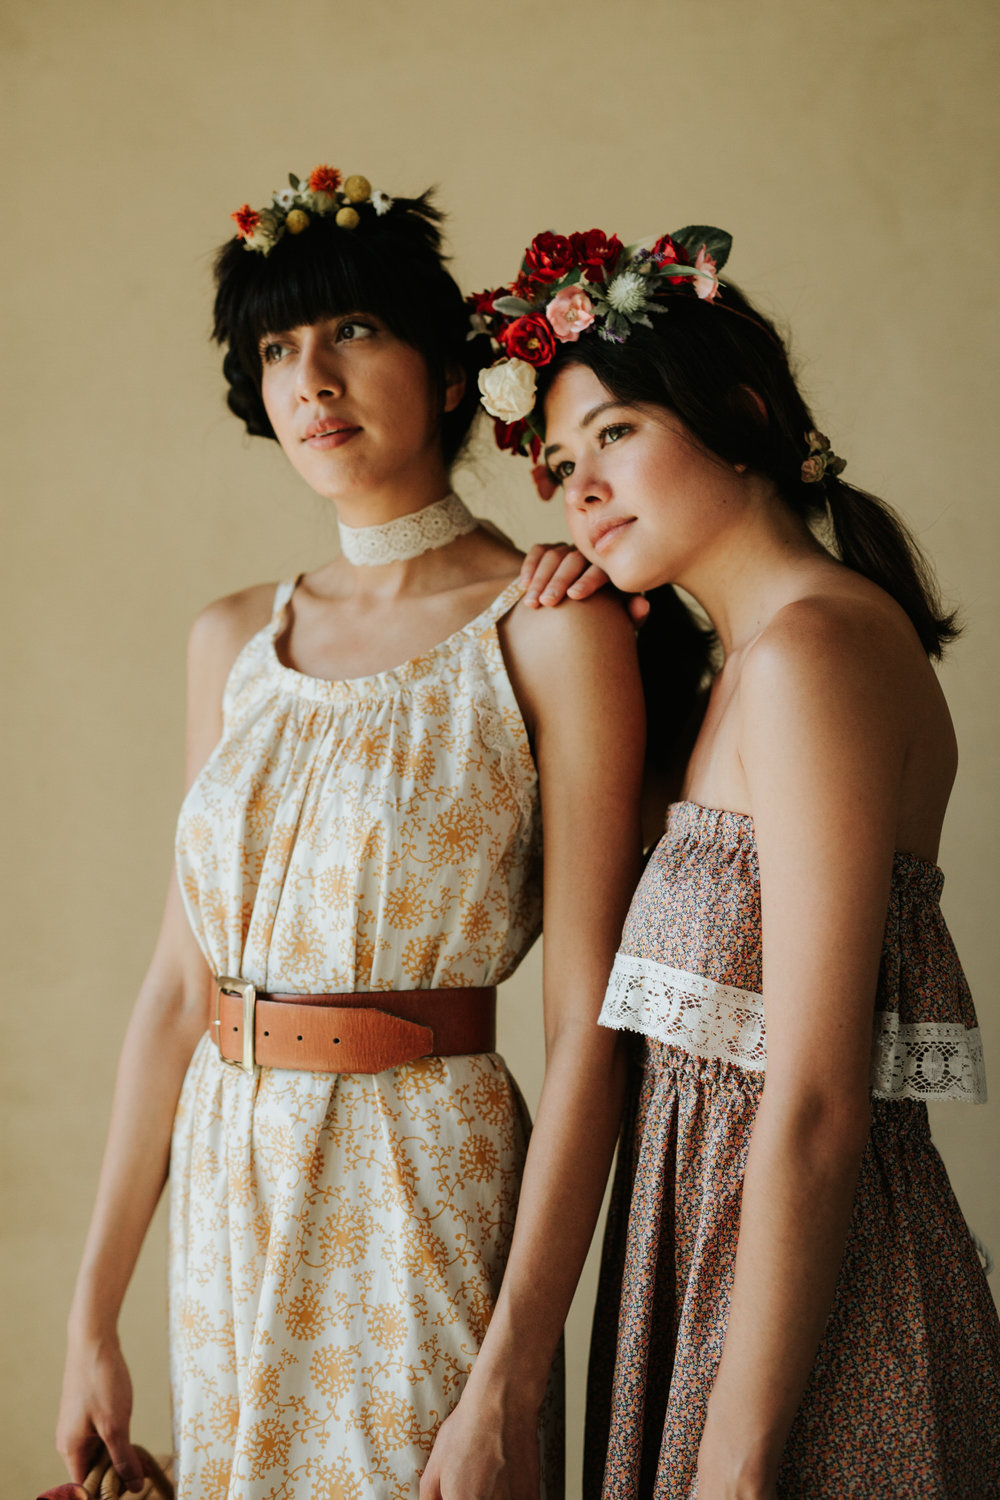 Women in Rat Des Champs lace vintage clothing and flower crowns